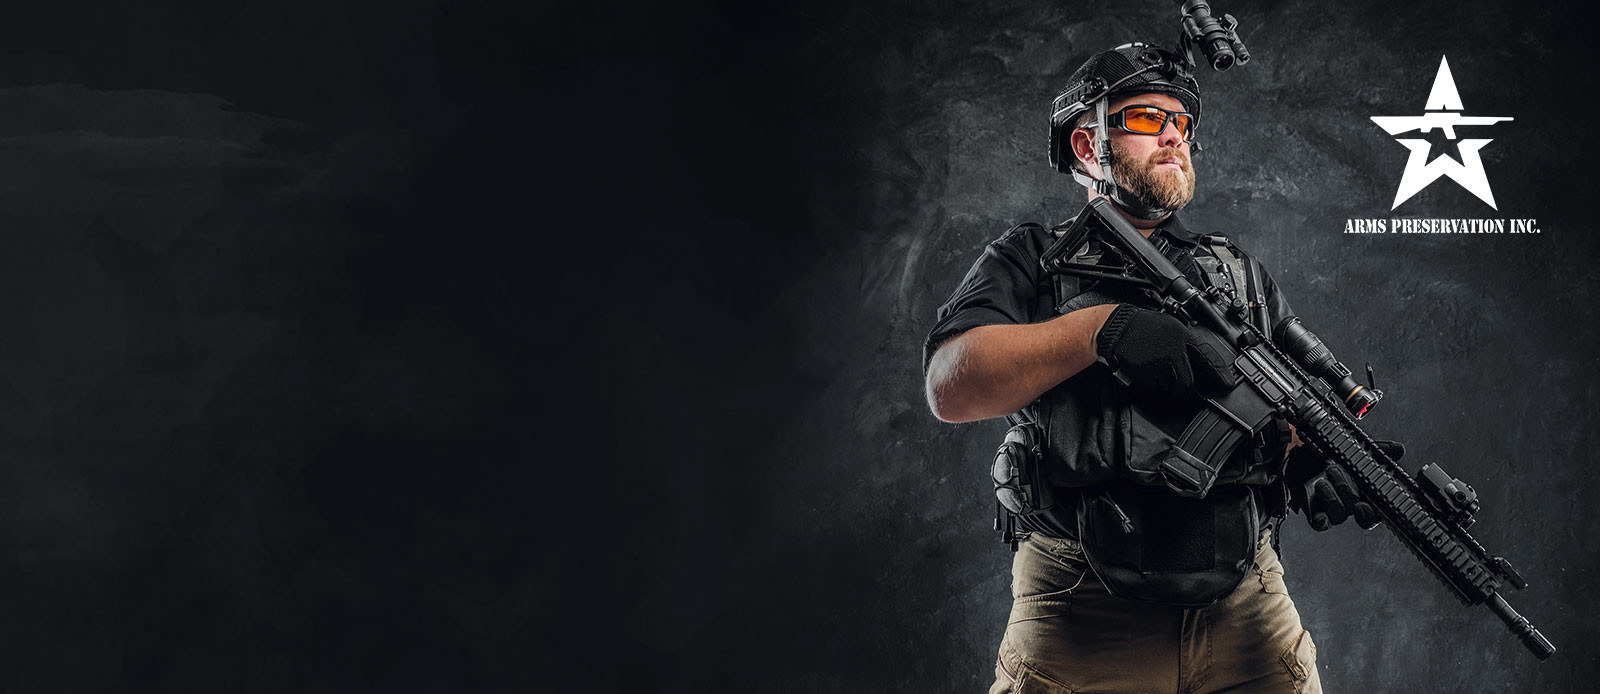 Arms preservation inc. man with tactical gear and holding an AR15